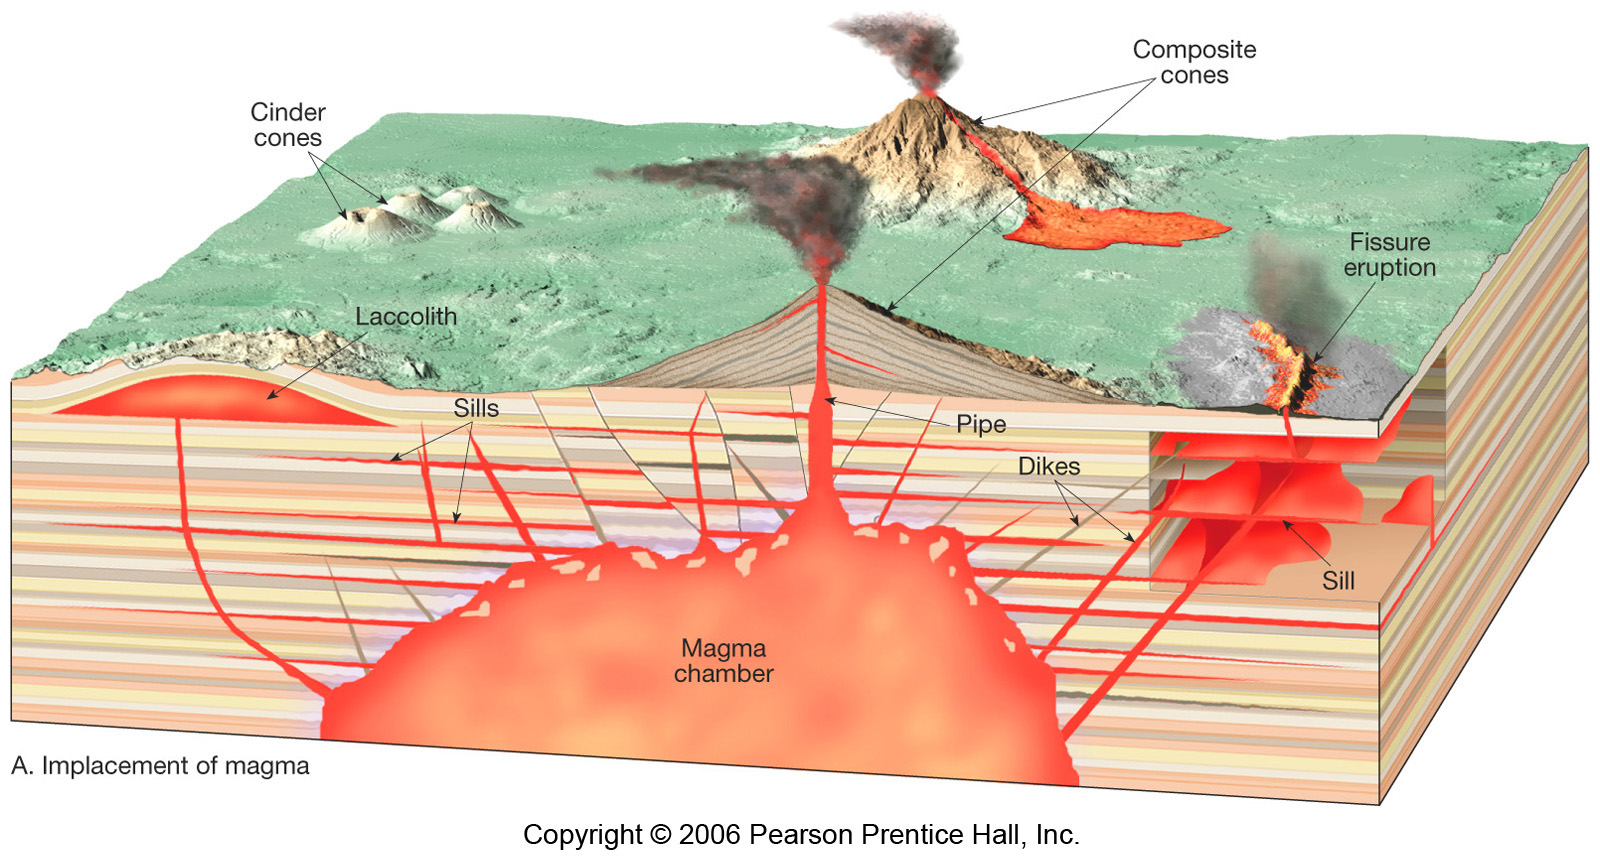 Just A Glance At How Lava Can Wreak Havoc On Nearly